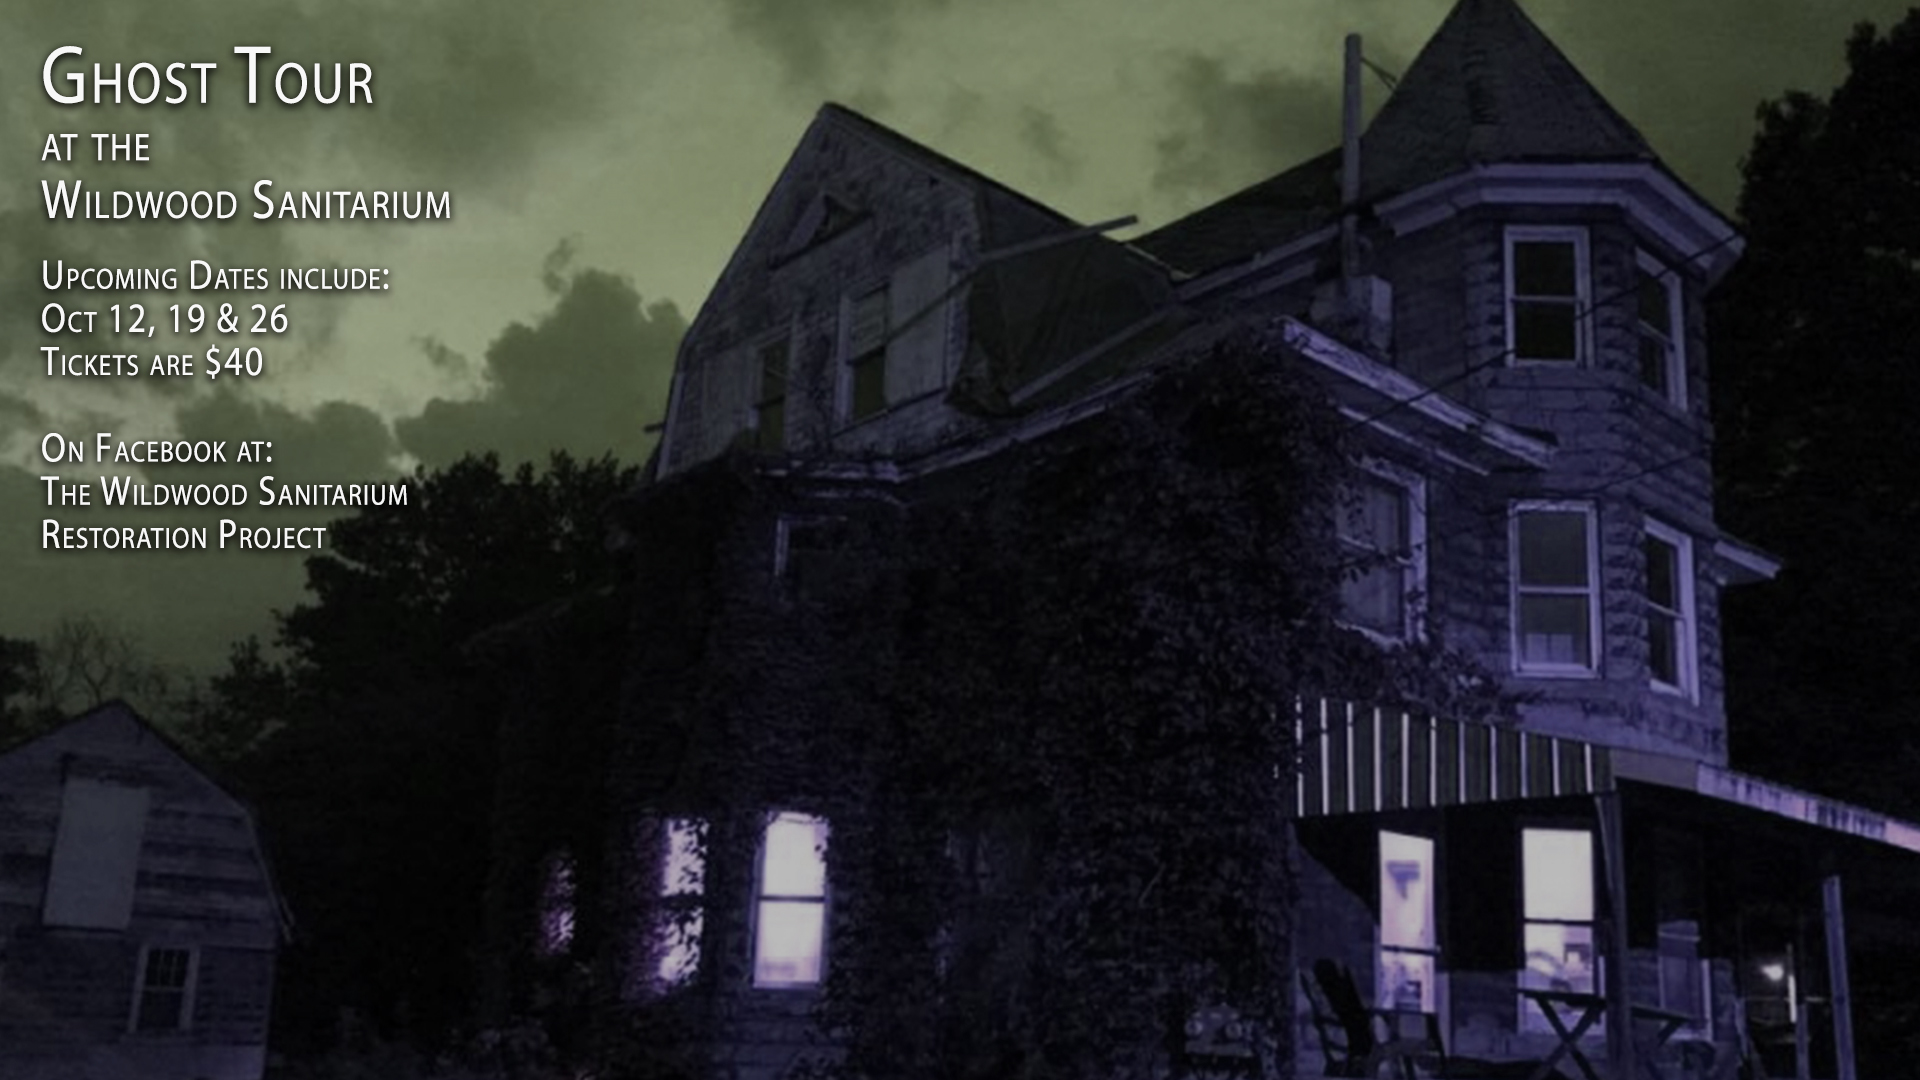 Ghost Tours of the Wildwood Sanitarium